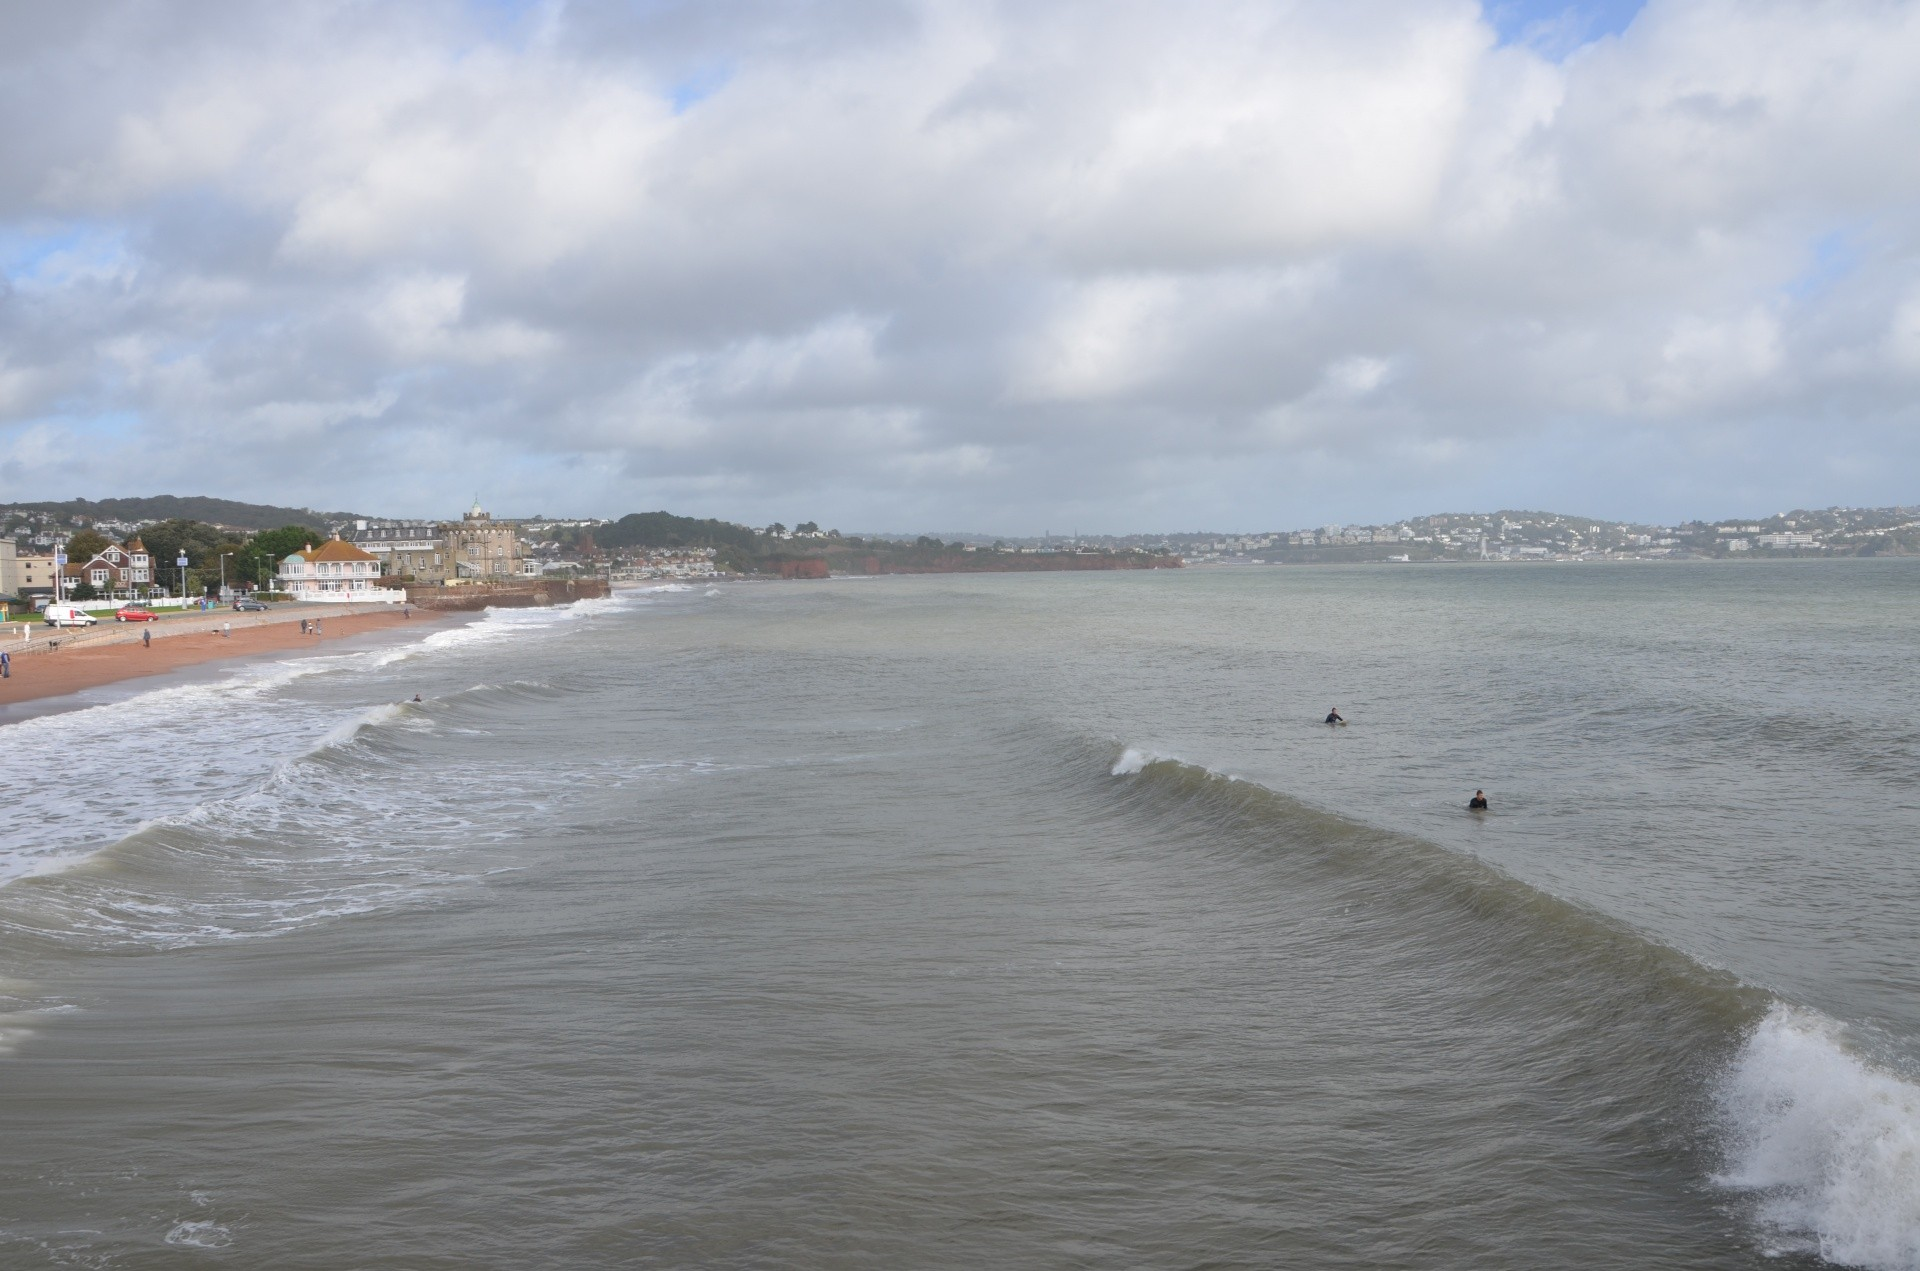 HaydnWoolleyPhotography's photo of Paignton